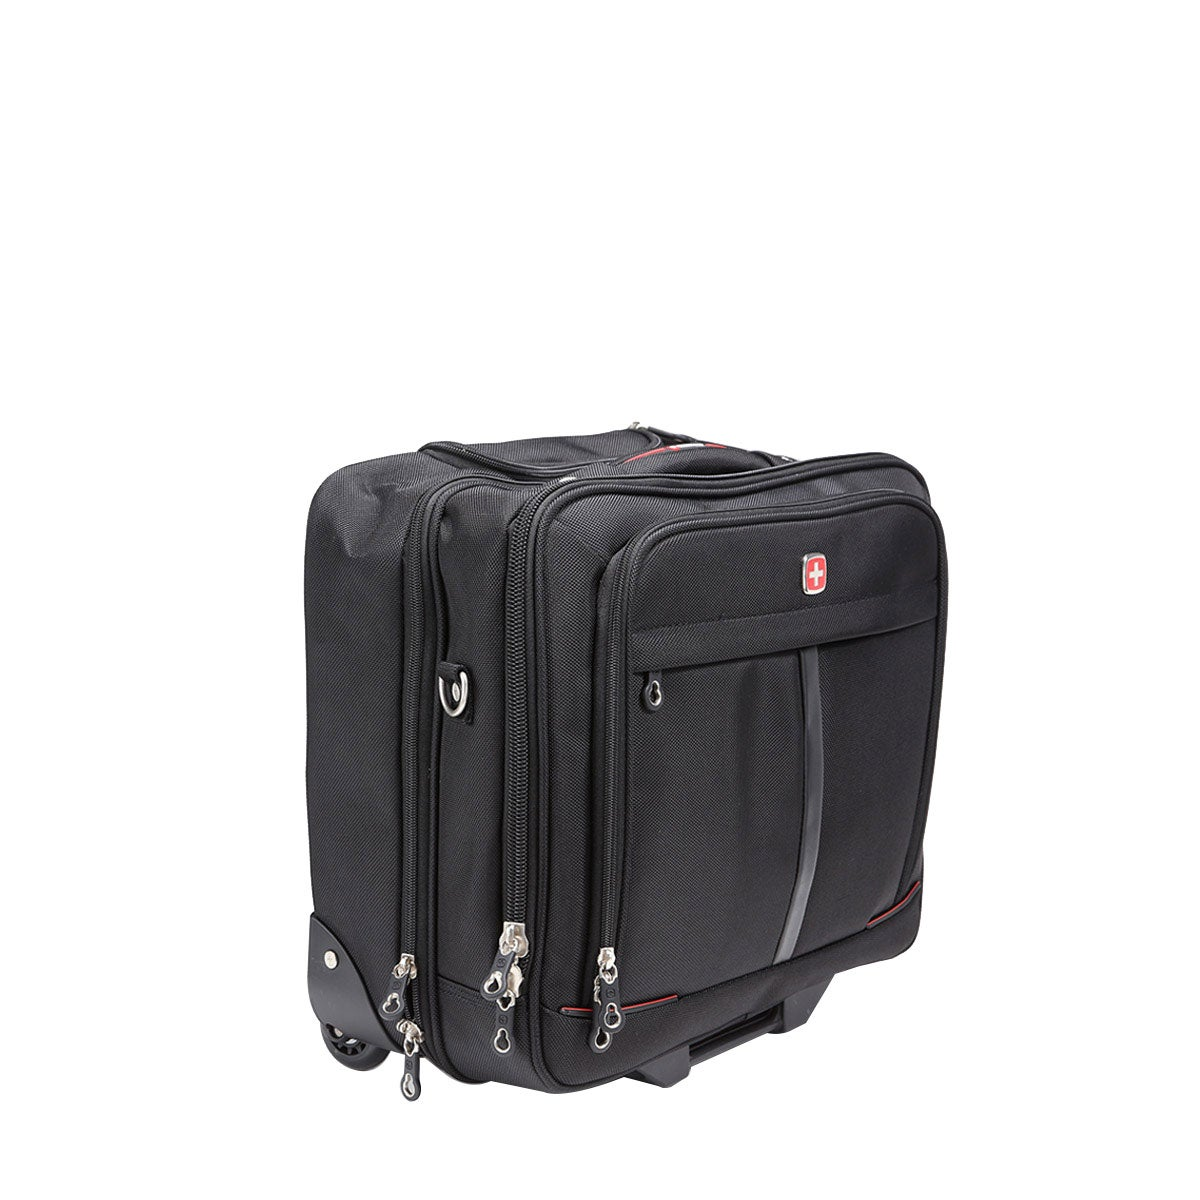 Mns Swiss Gear Wenger Business Traveler